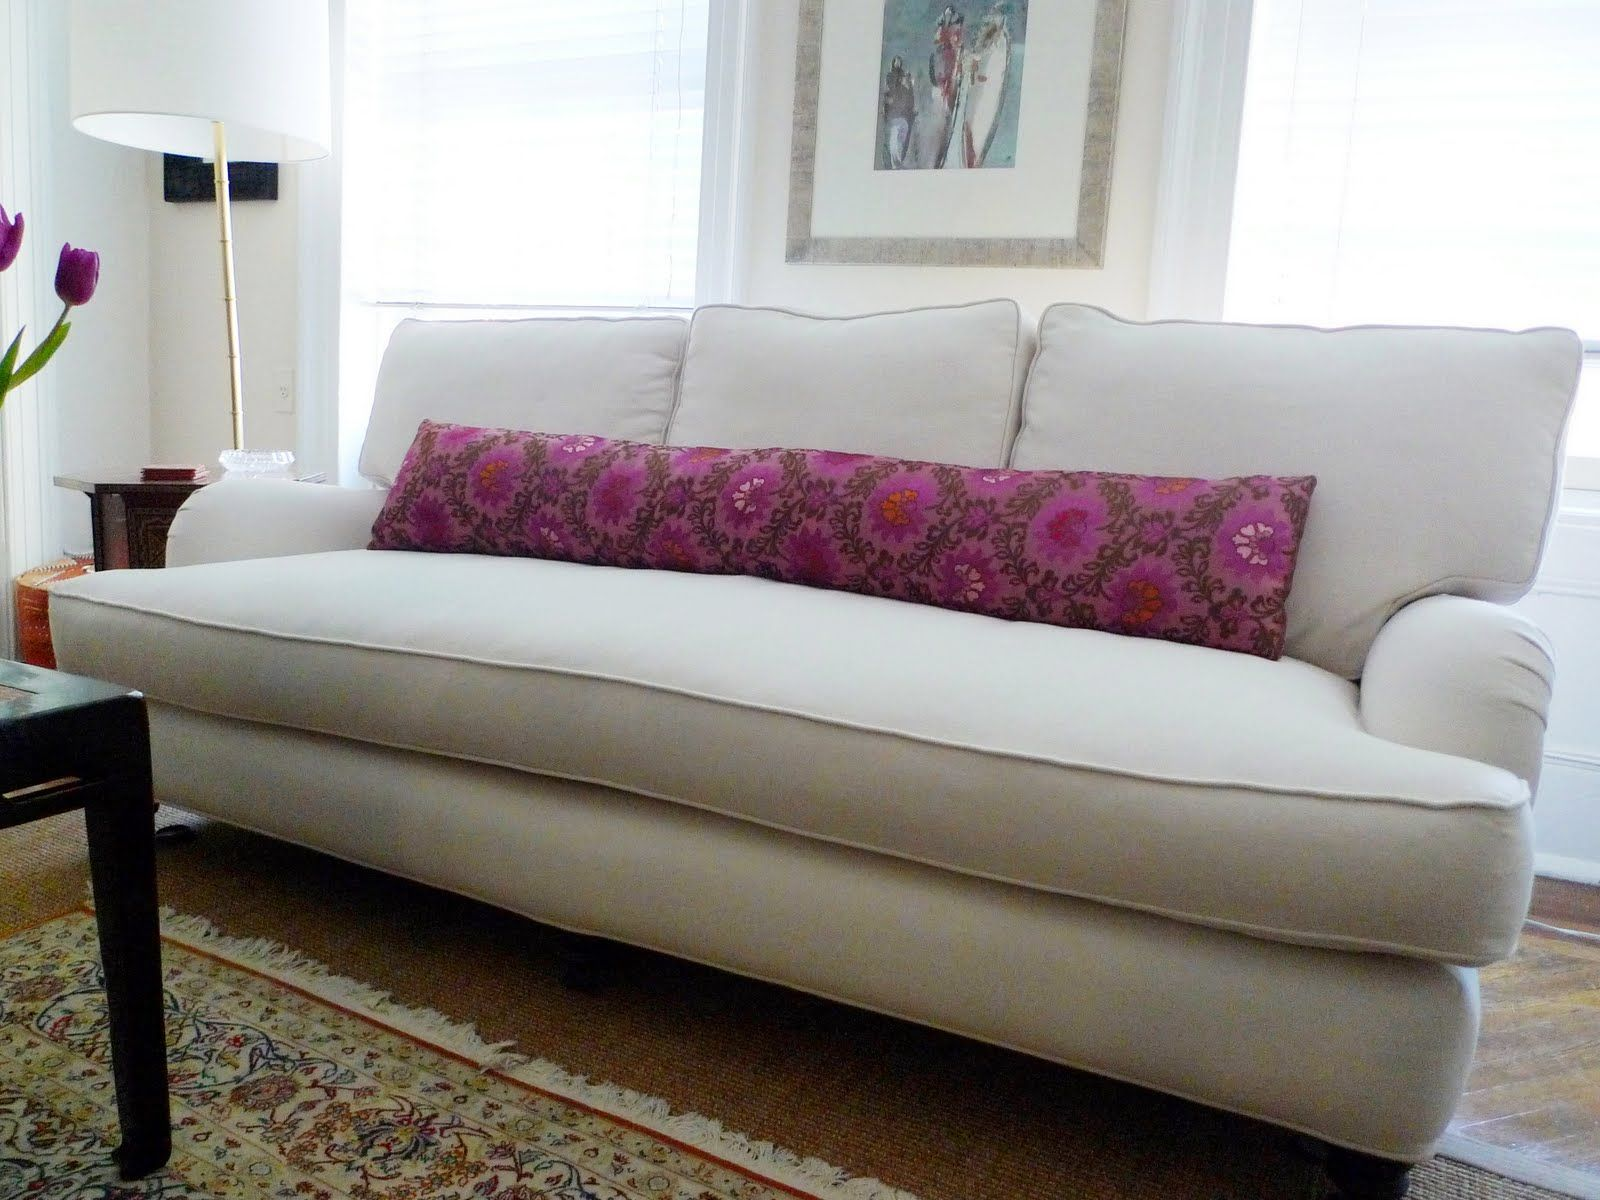 Sofa Lounge Nyc Beautiful Pillow On The Single Cushion Sofa Room